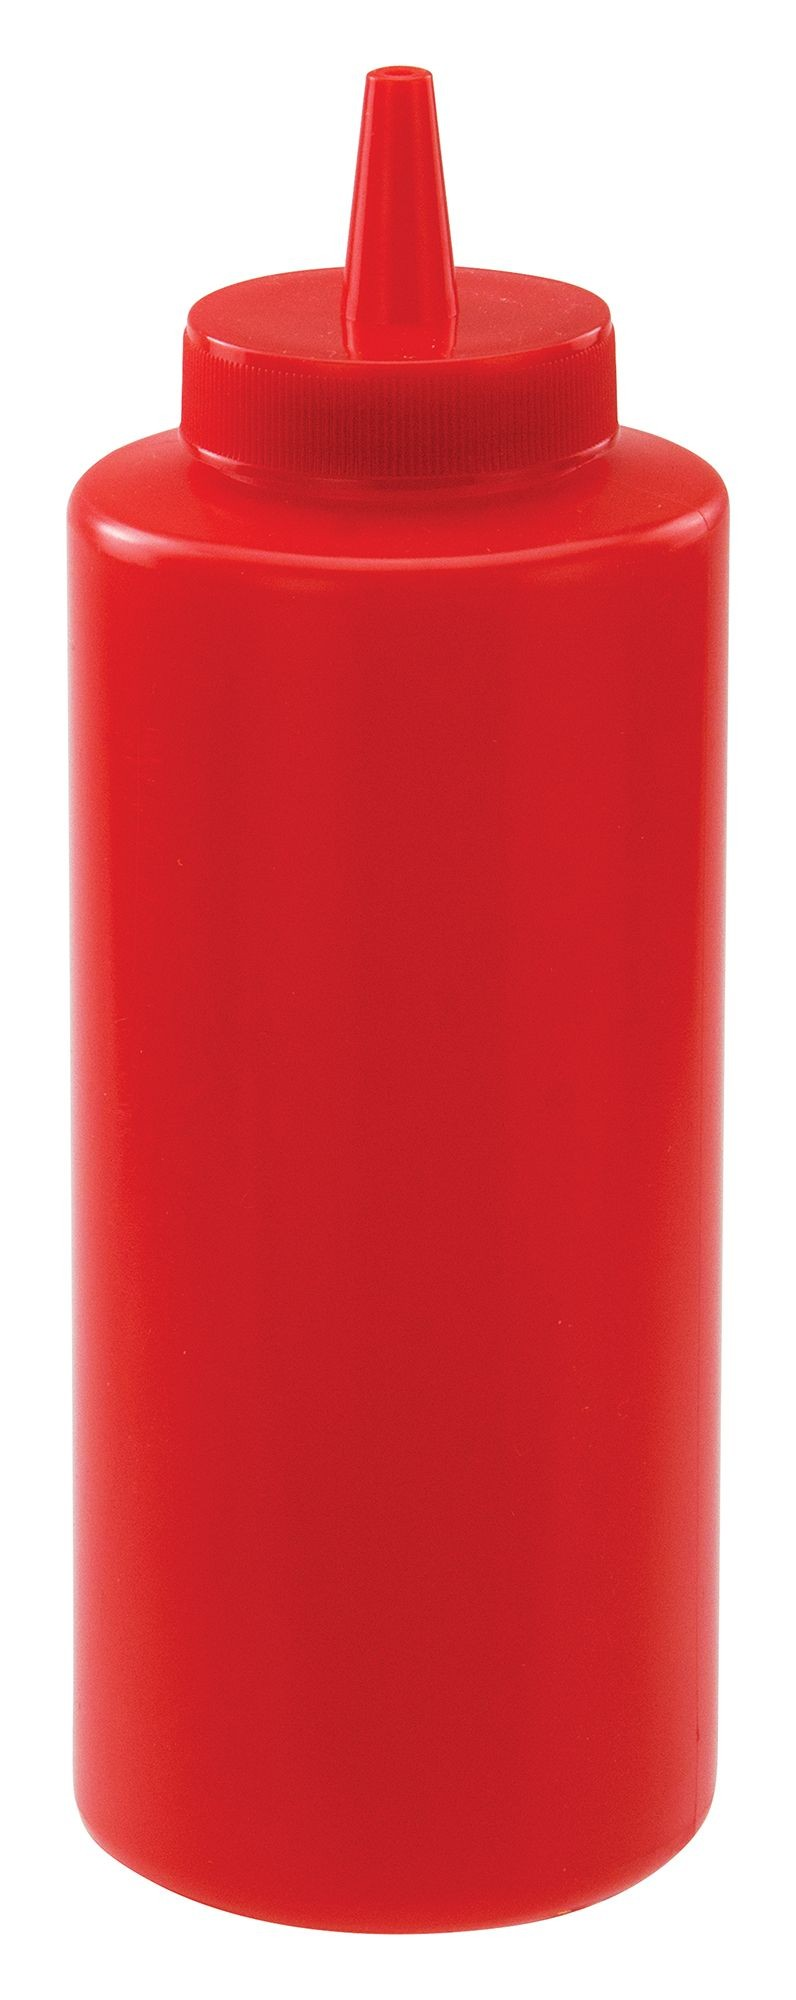 Red Plastic 12 Oz. Squeeze Bottle